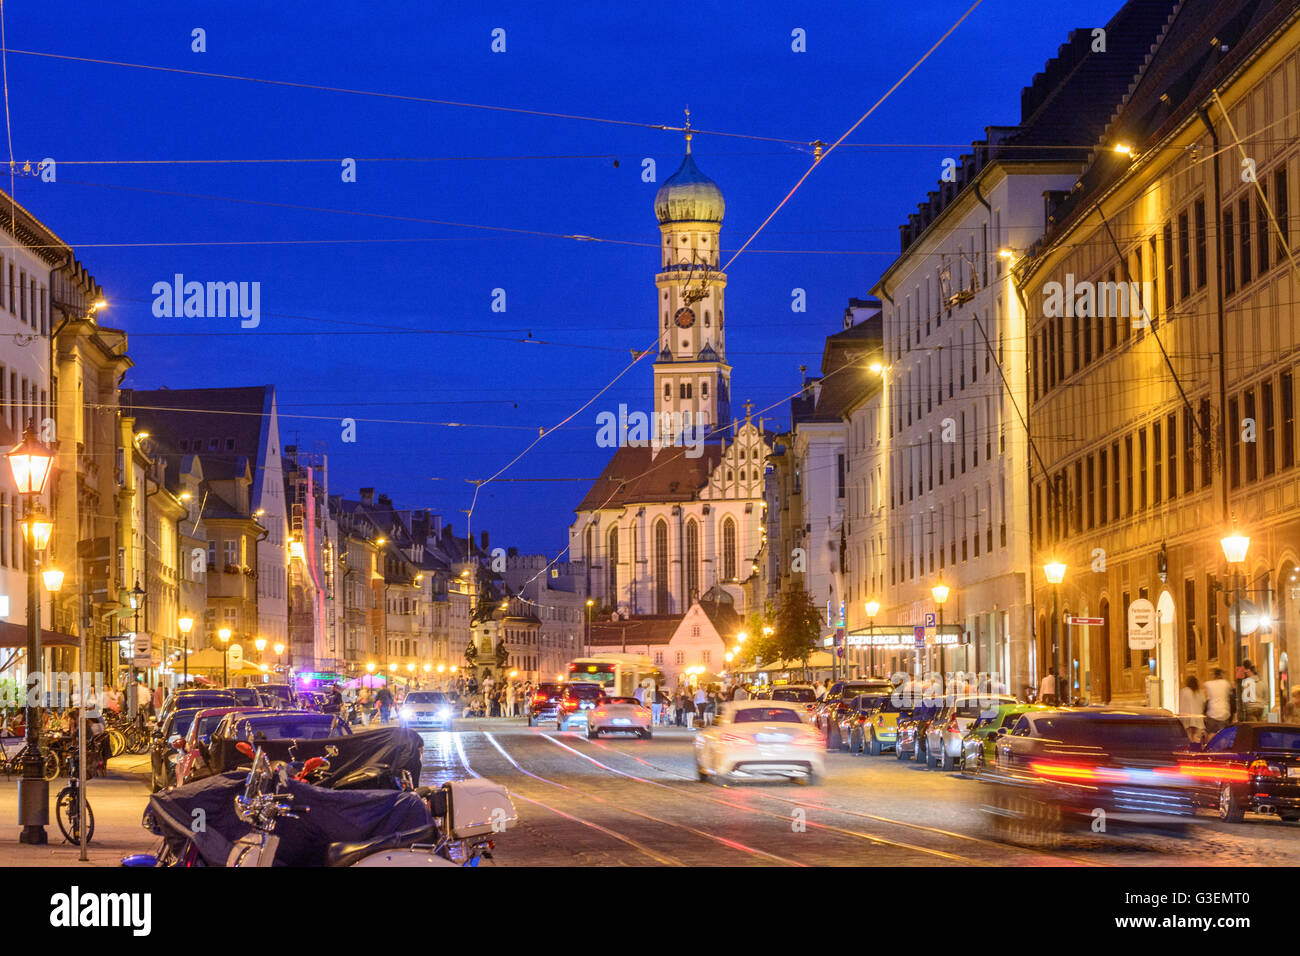 Maximilianstrasse and the Basilica of St. Ulrich and Afra, Germany, Bayern, Bavaria, Schwaben, Swabia, Augsburg - Stock Image